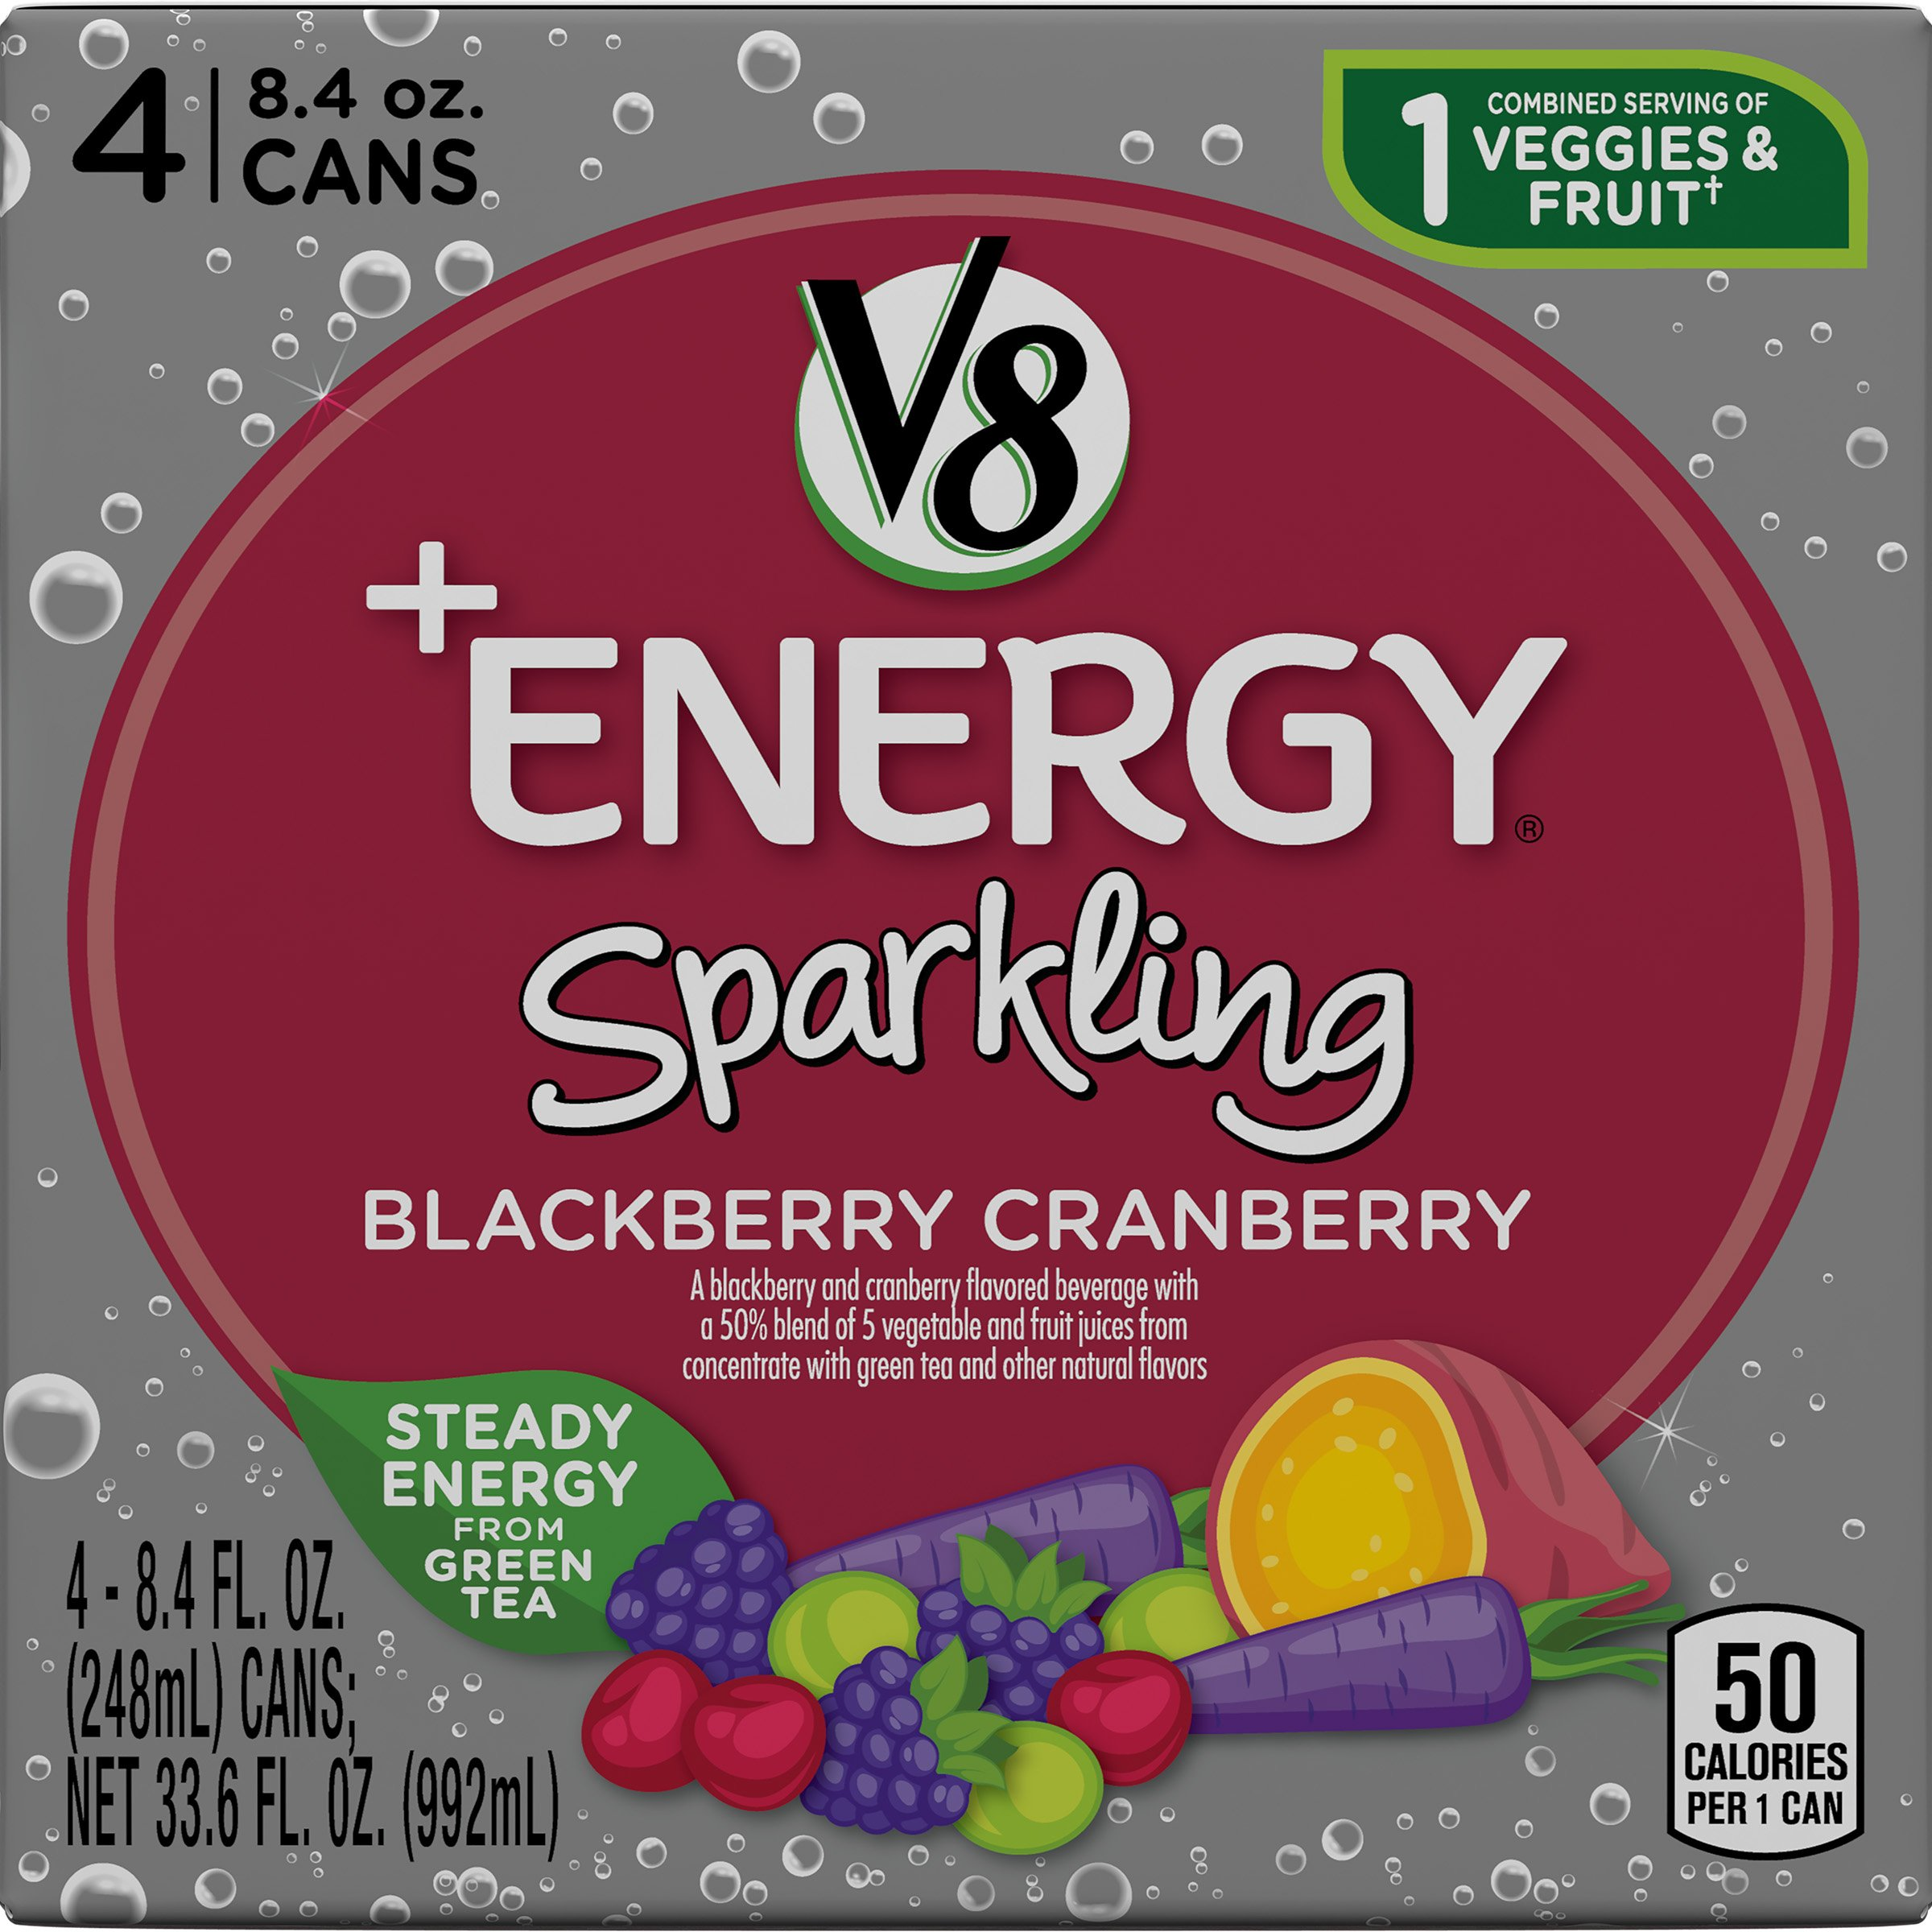 V8 +Energy Sparkling Healthy Energy Drink, Natural Energy from Tea, Blackberry Cranberry, 8.4 Ounce Can (4 Count)